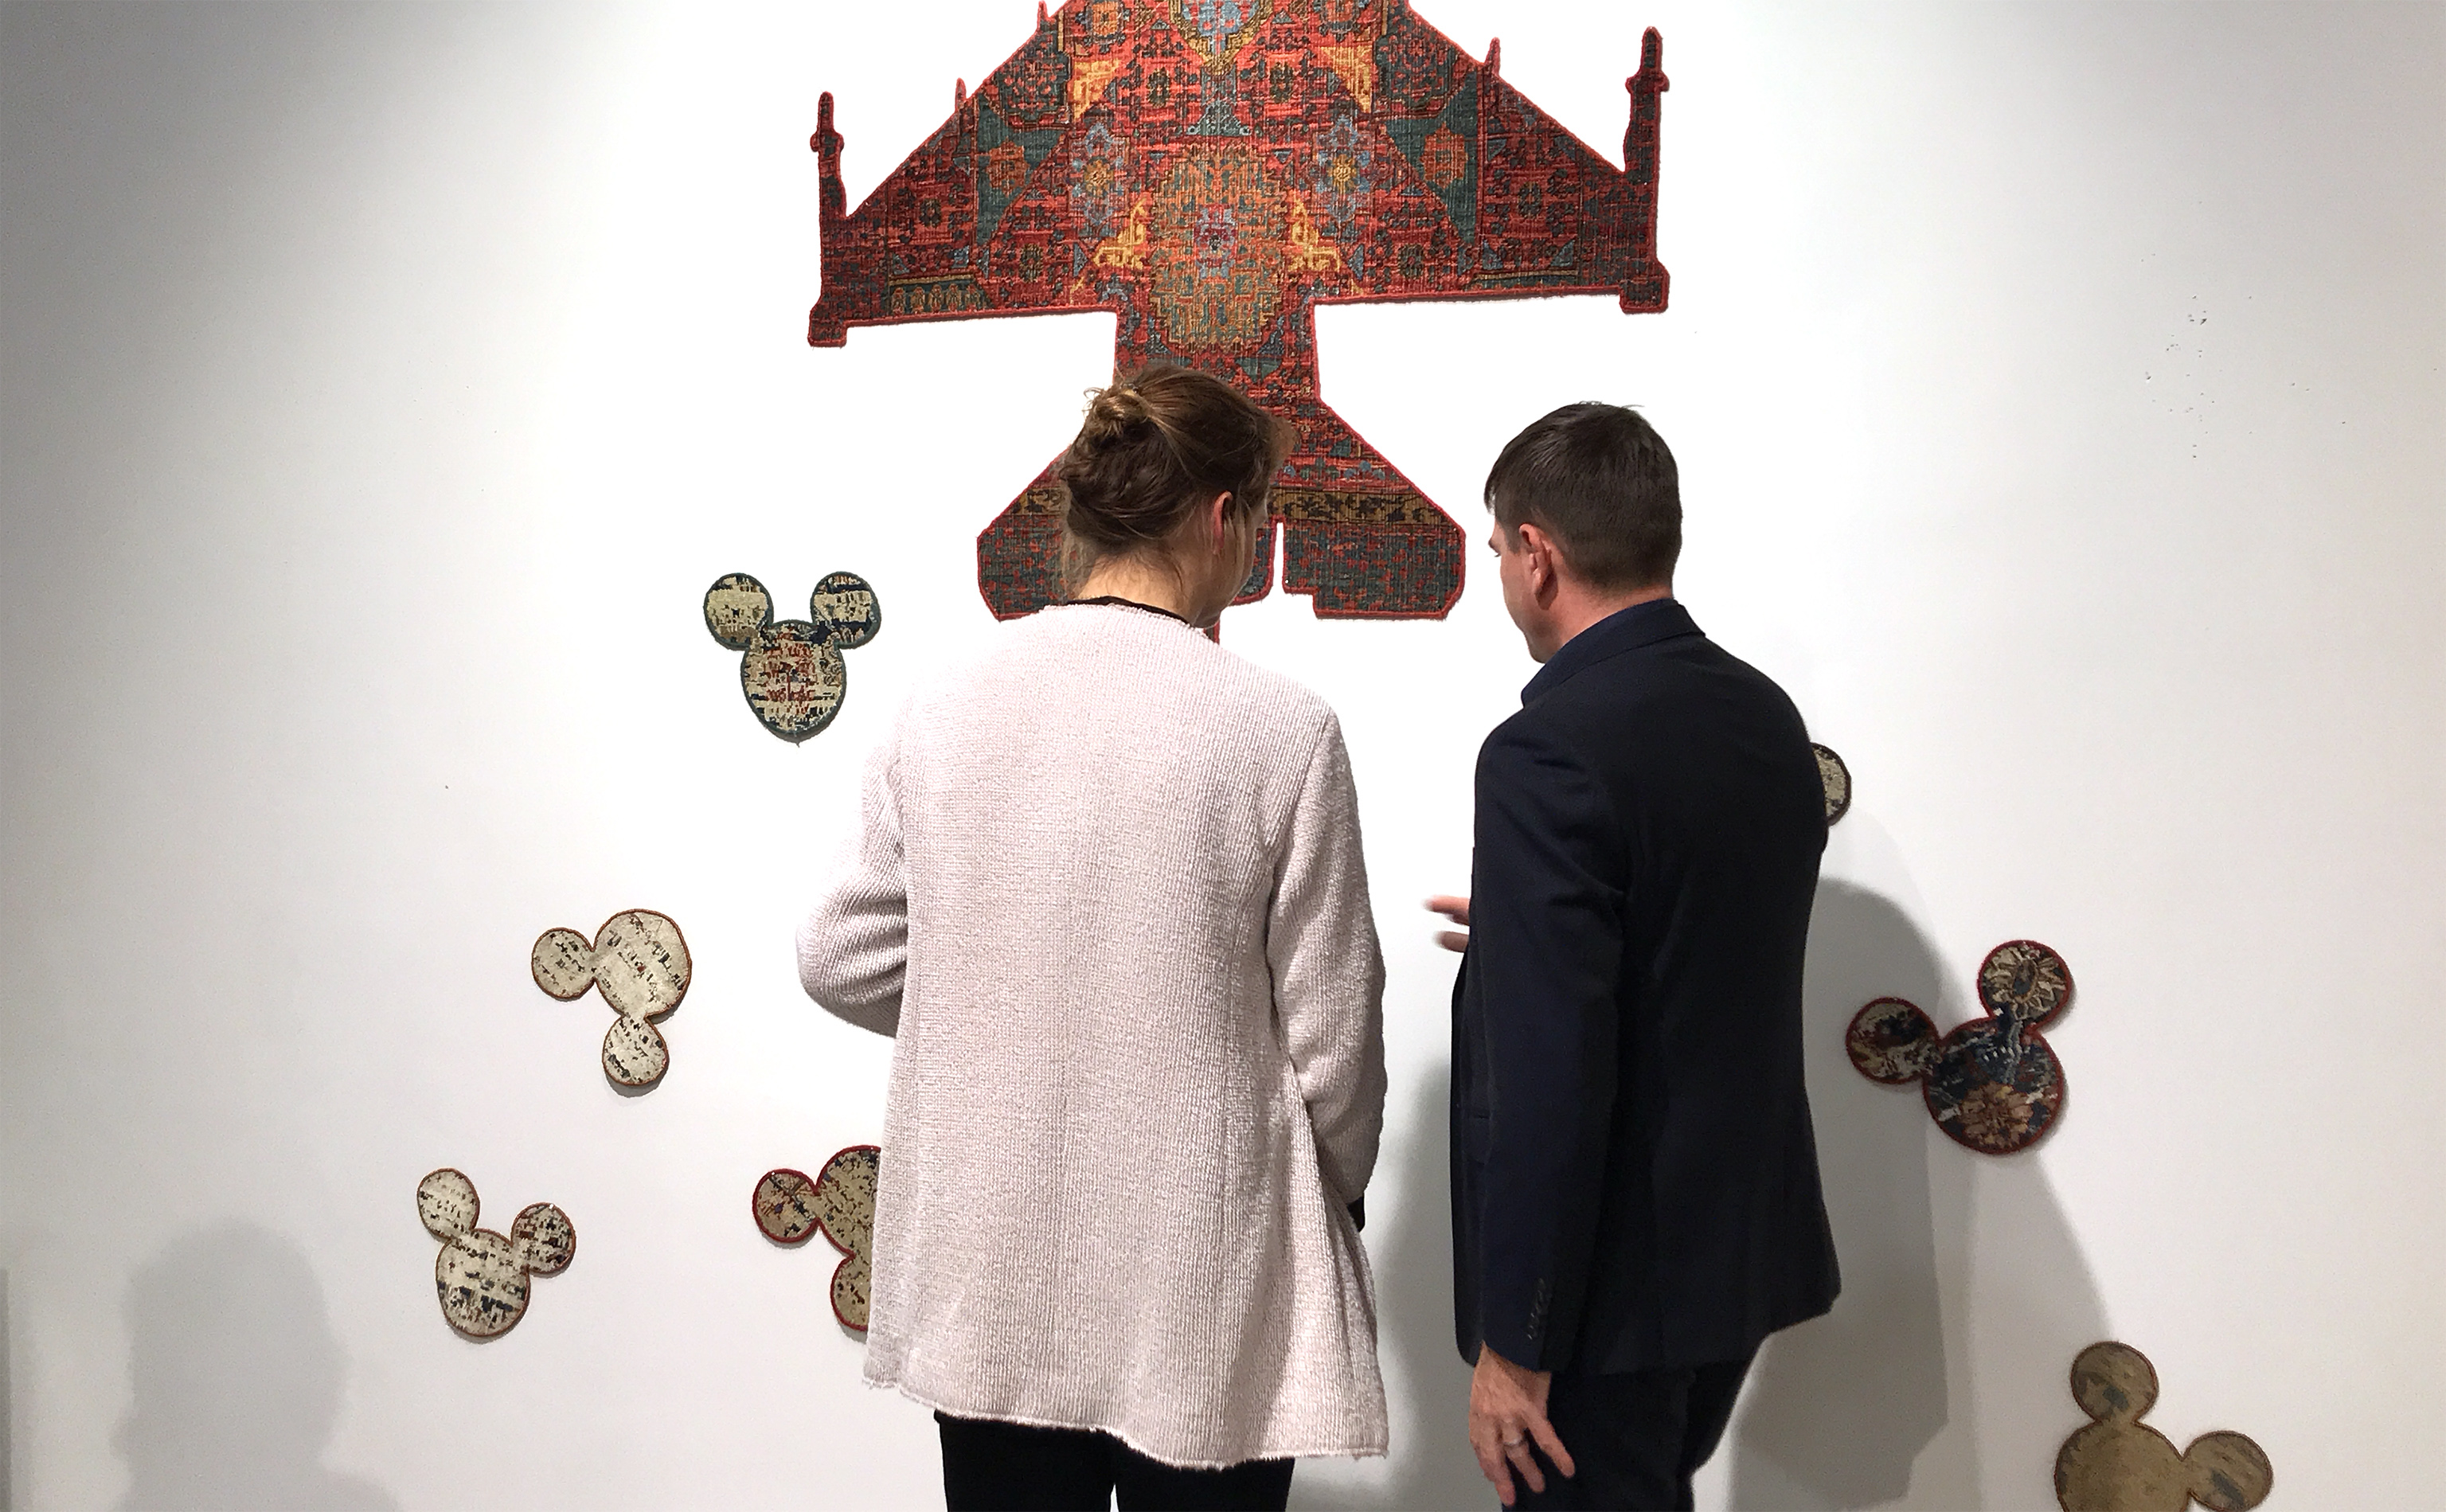 Miriam Moll (left) of Nyhues - Contemporary Art Rugs shown in discussion with Jan Kath himself at Jan Kath Köln during the 'Make Rugs Not War' vernissage at Jan Kath Köln on 15 January 2019. | Photograph by The Ruggist.